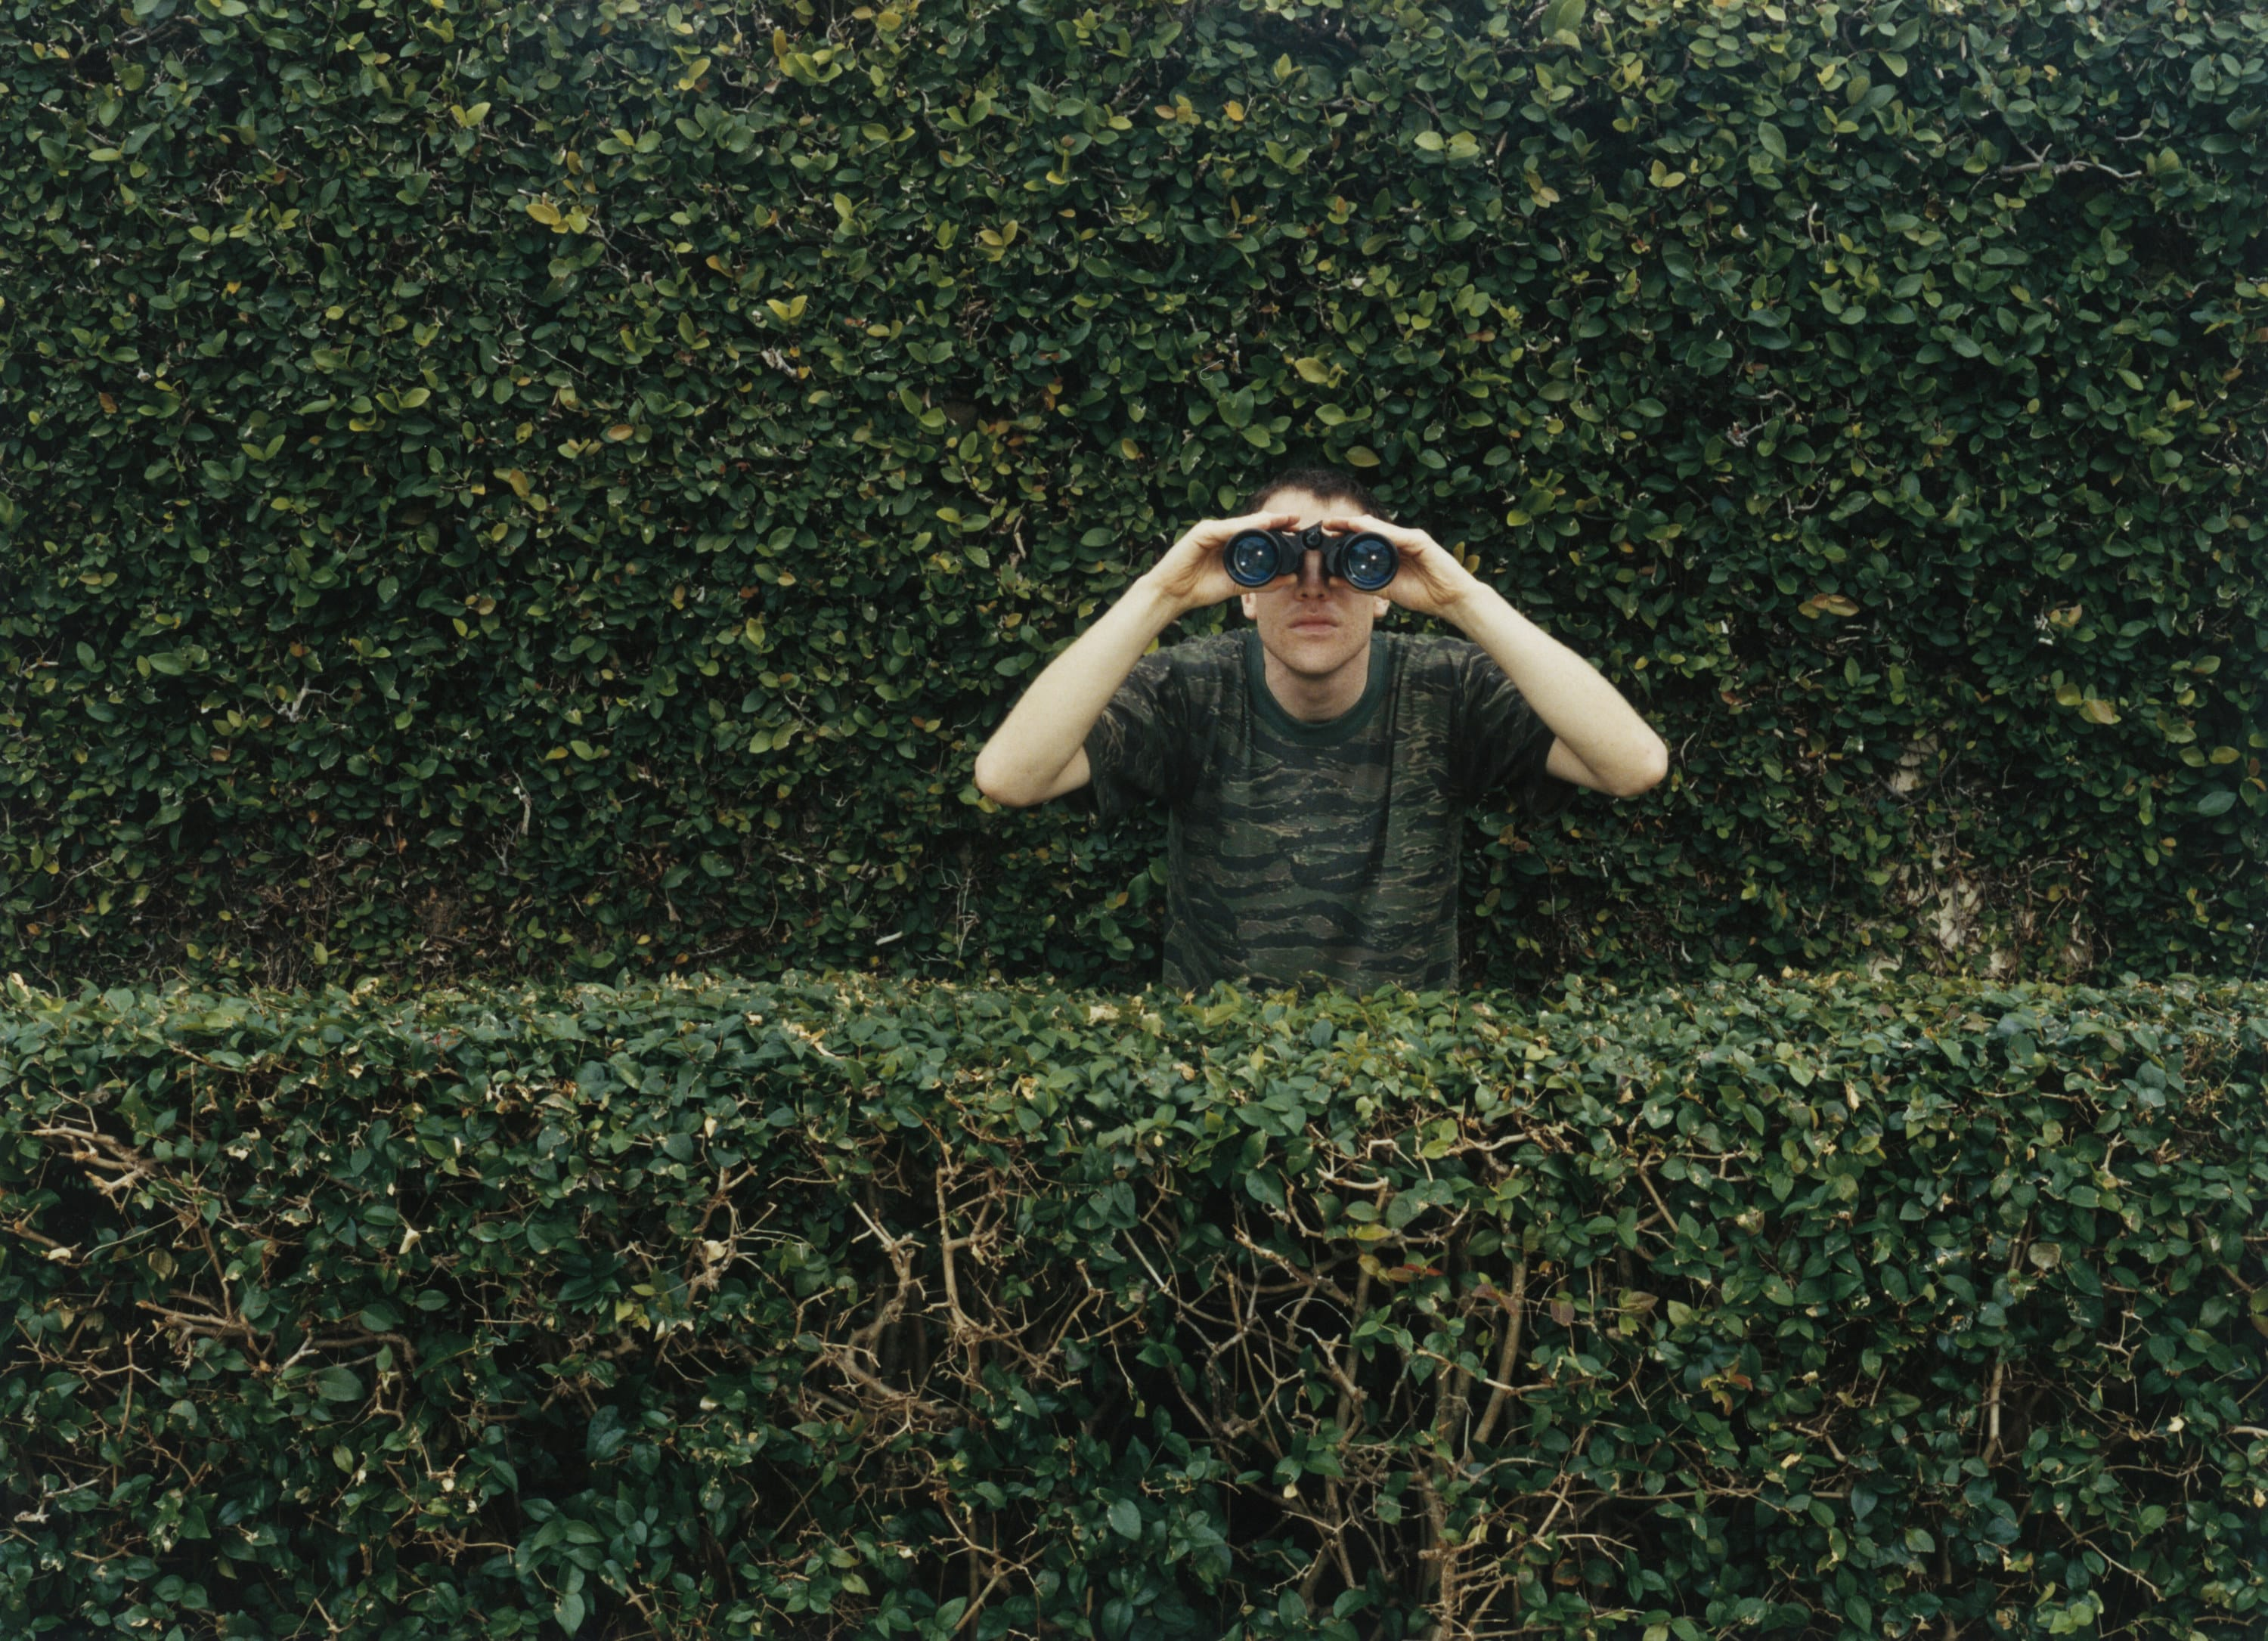 Front view of a man standing behind a row of hedges, a larger one behind him, looking through binoculars